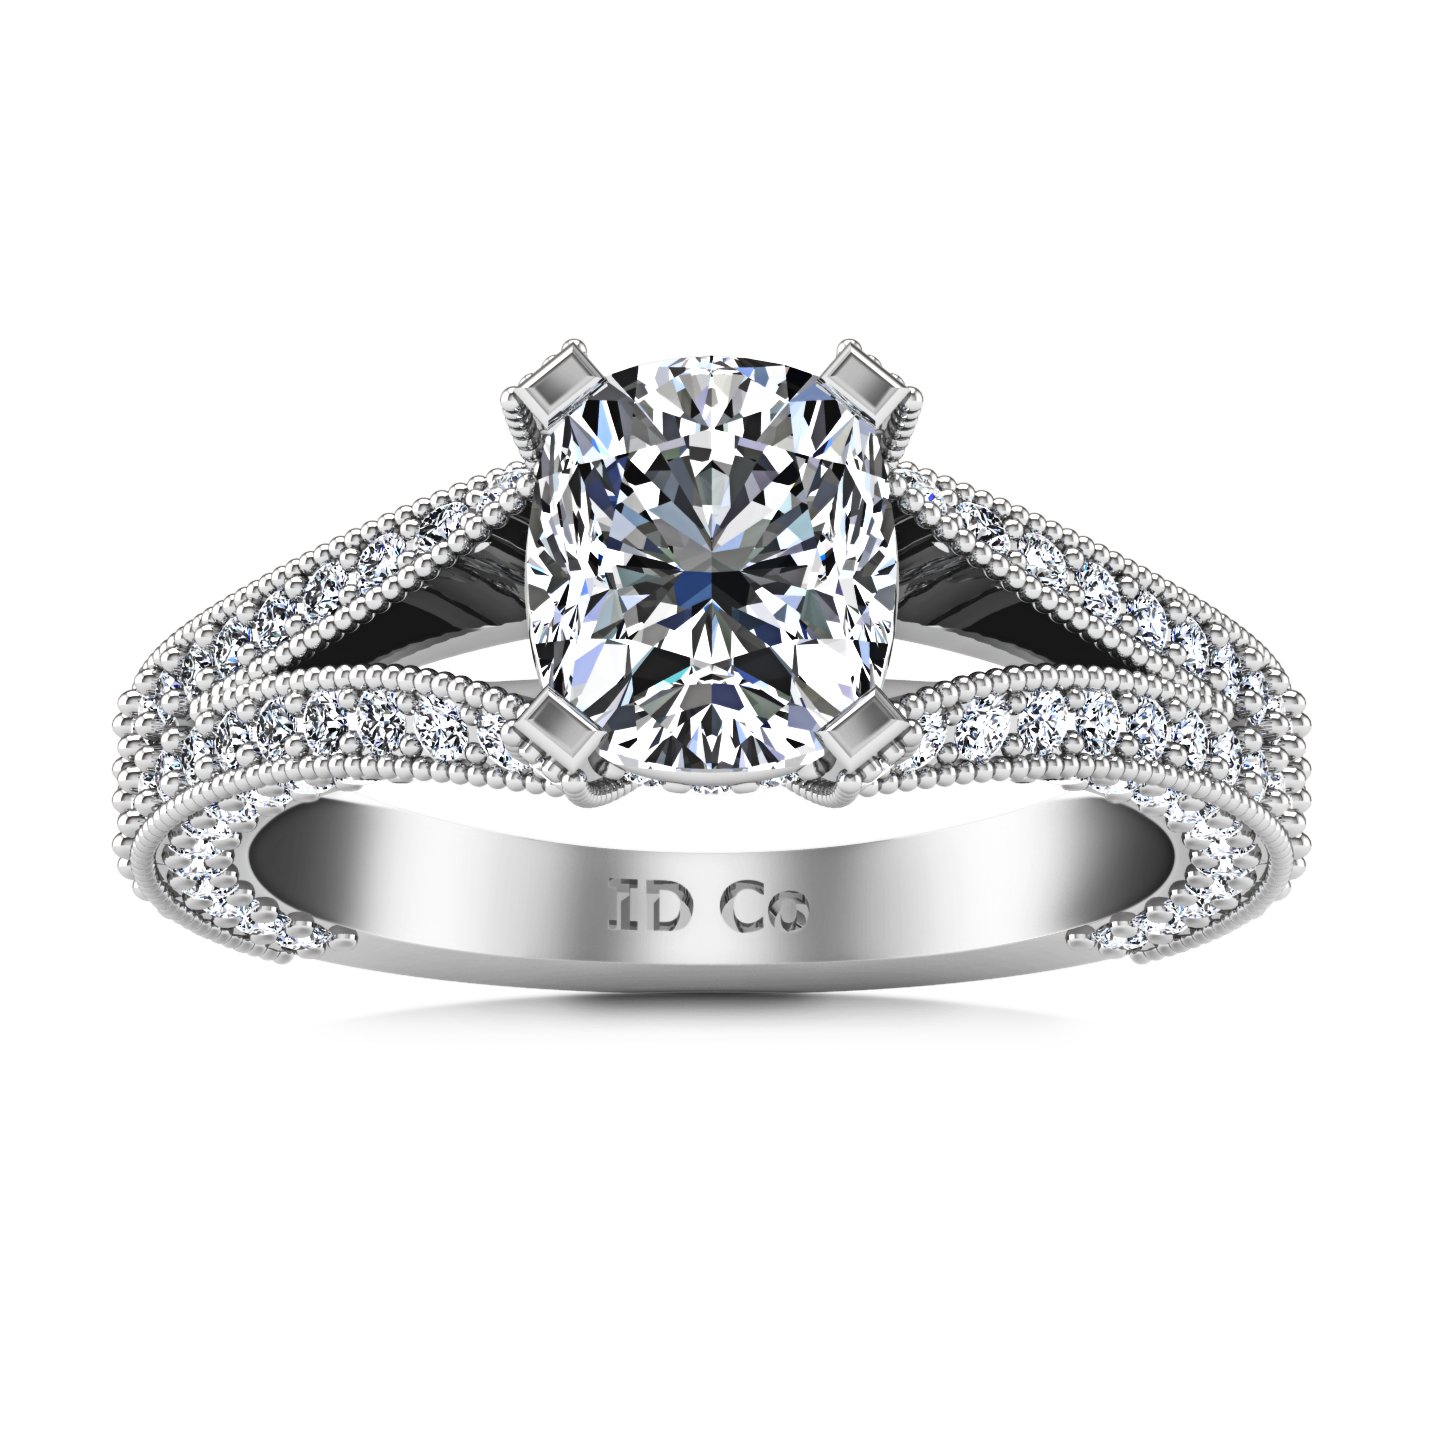 mo diamond white preset engagement cushion pid cusion moissanite gold rings ring cut and halo